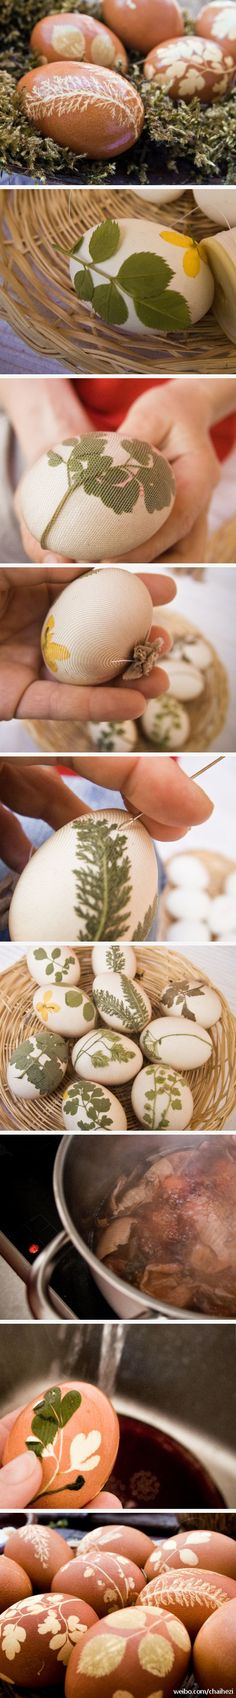 Eggs-natural. No dyes needed. @Ashley Lauren